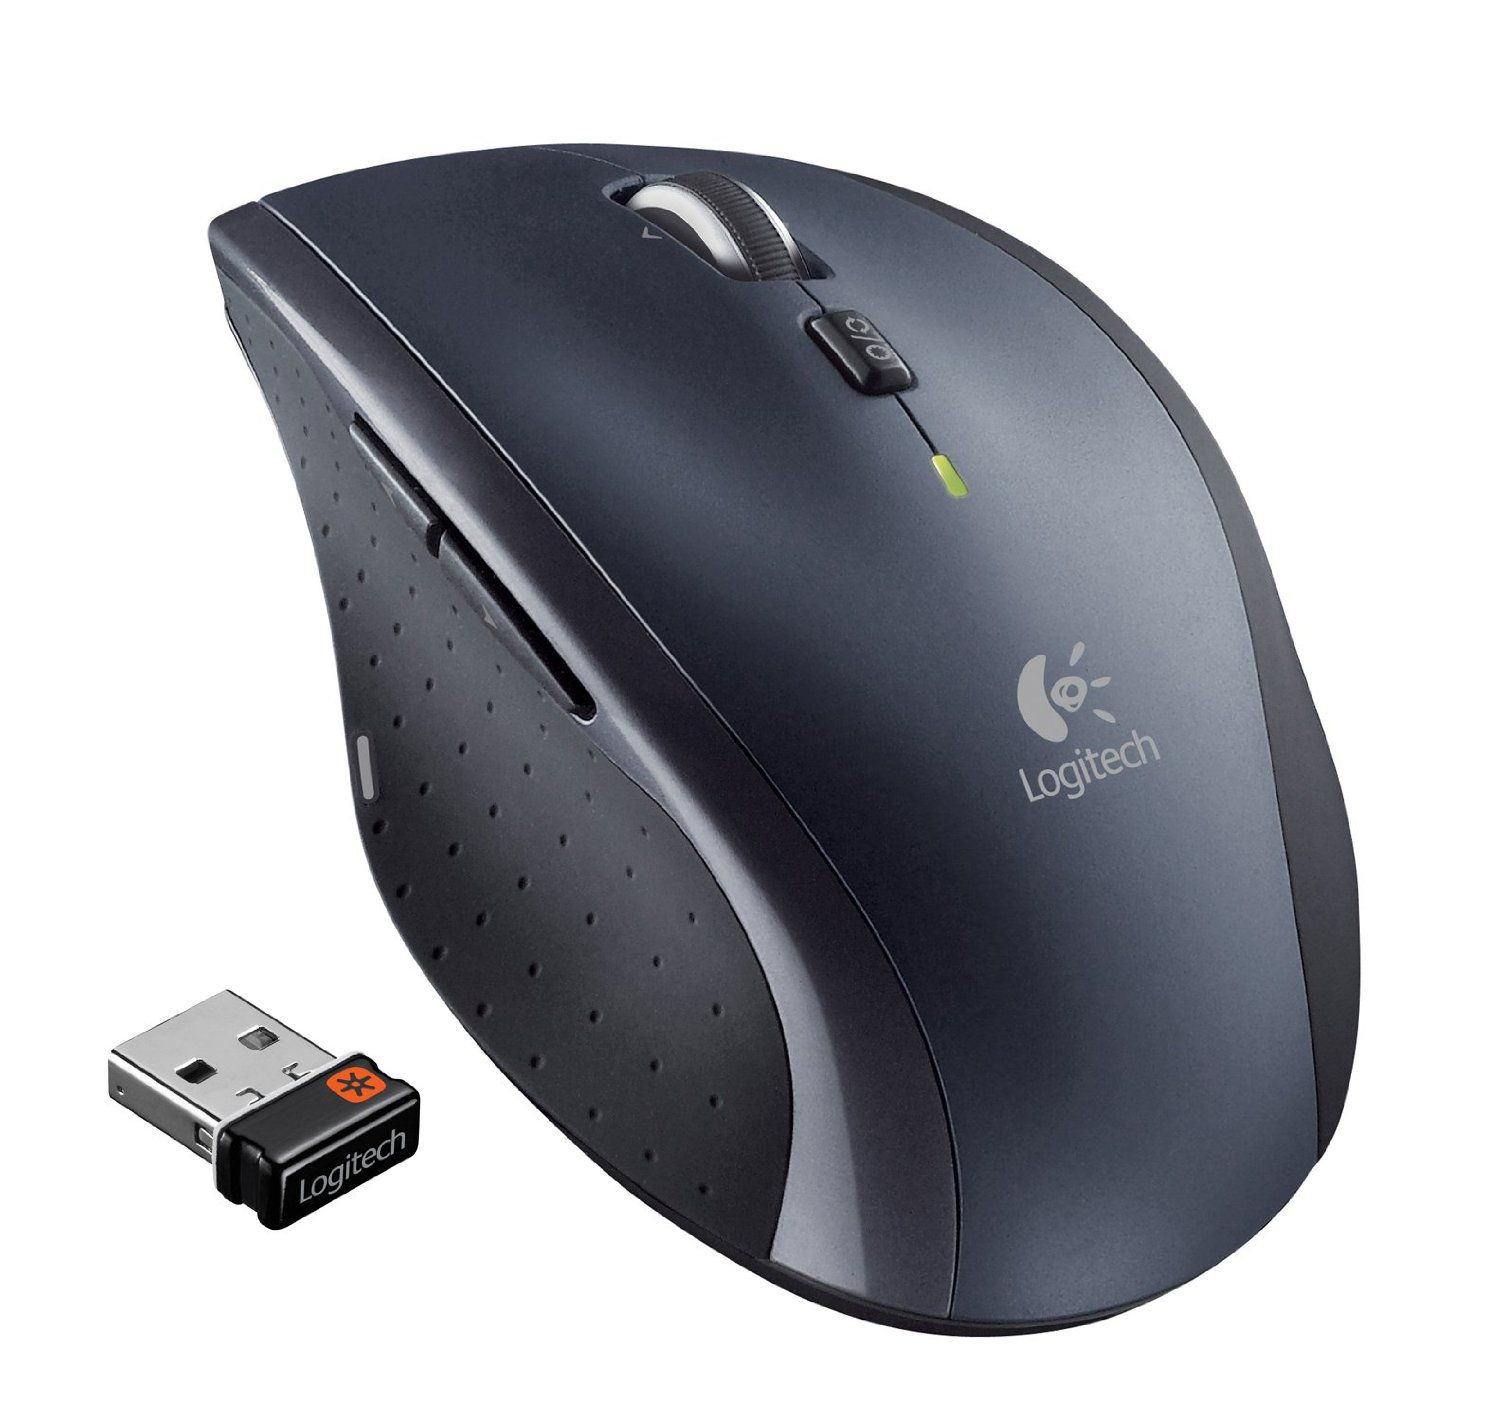 The 10 Best Wireless Mice To Buy In 2018 Mouse Advence W10 Battery Life Logitech Marathon M705